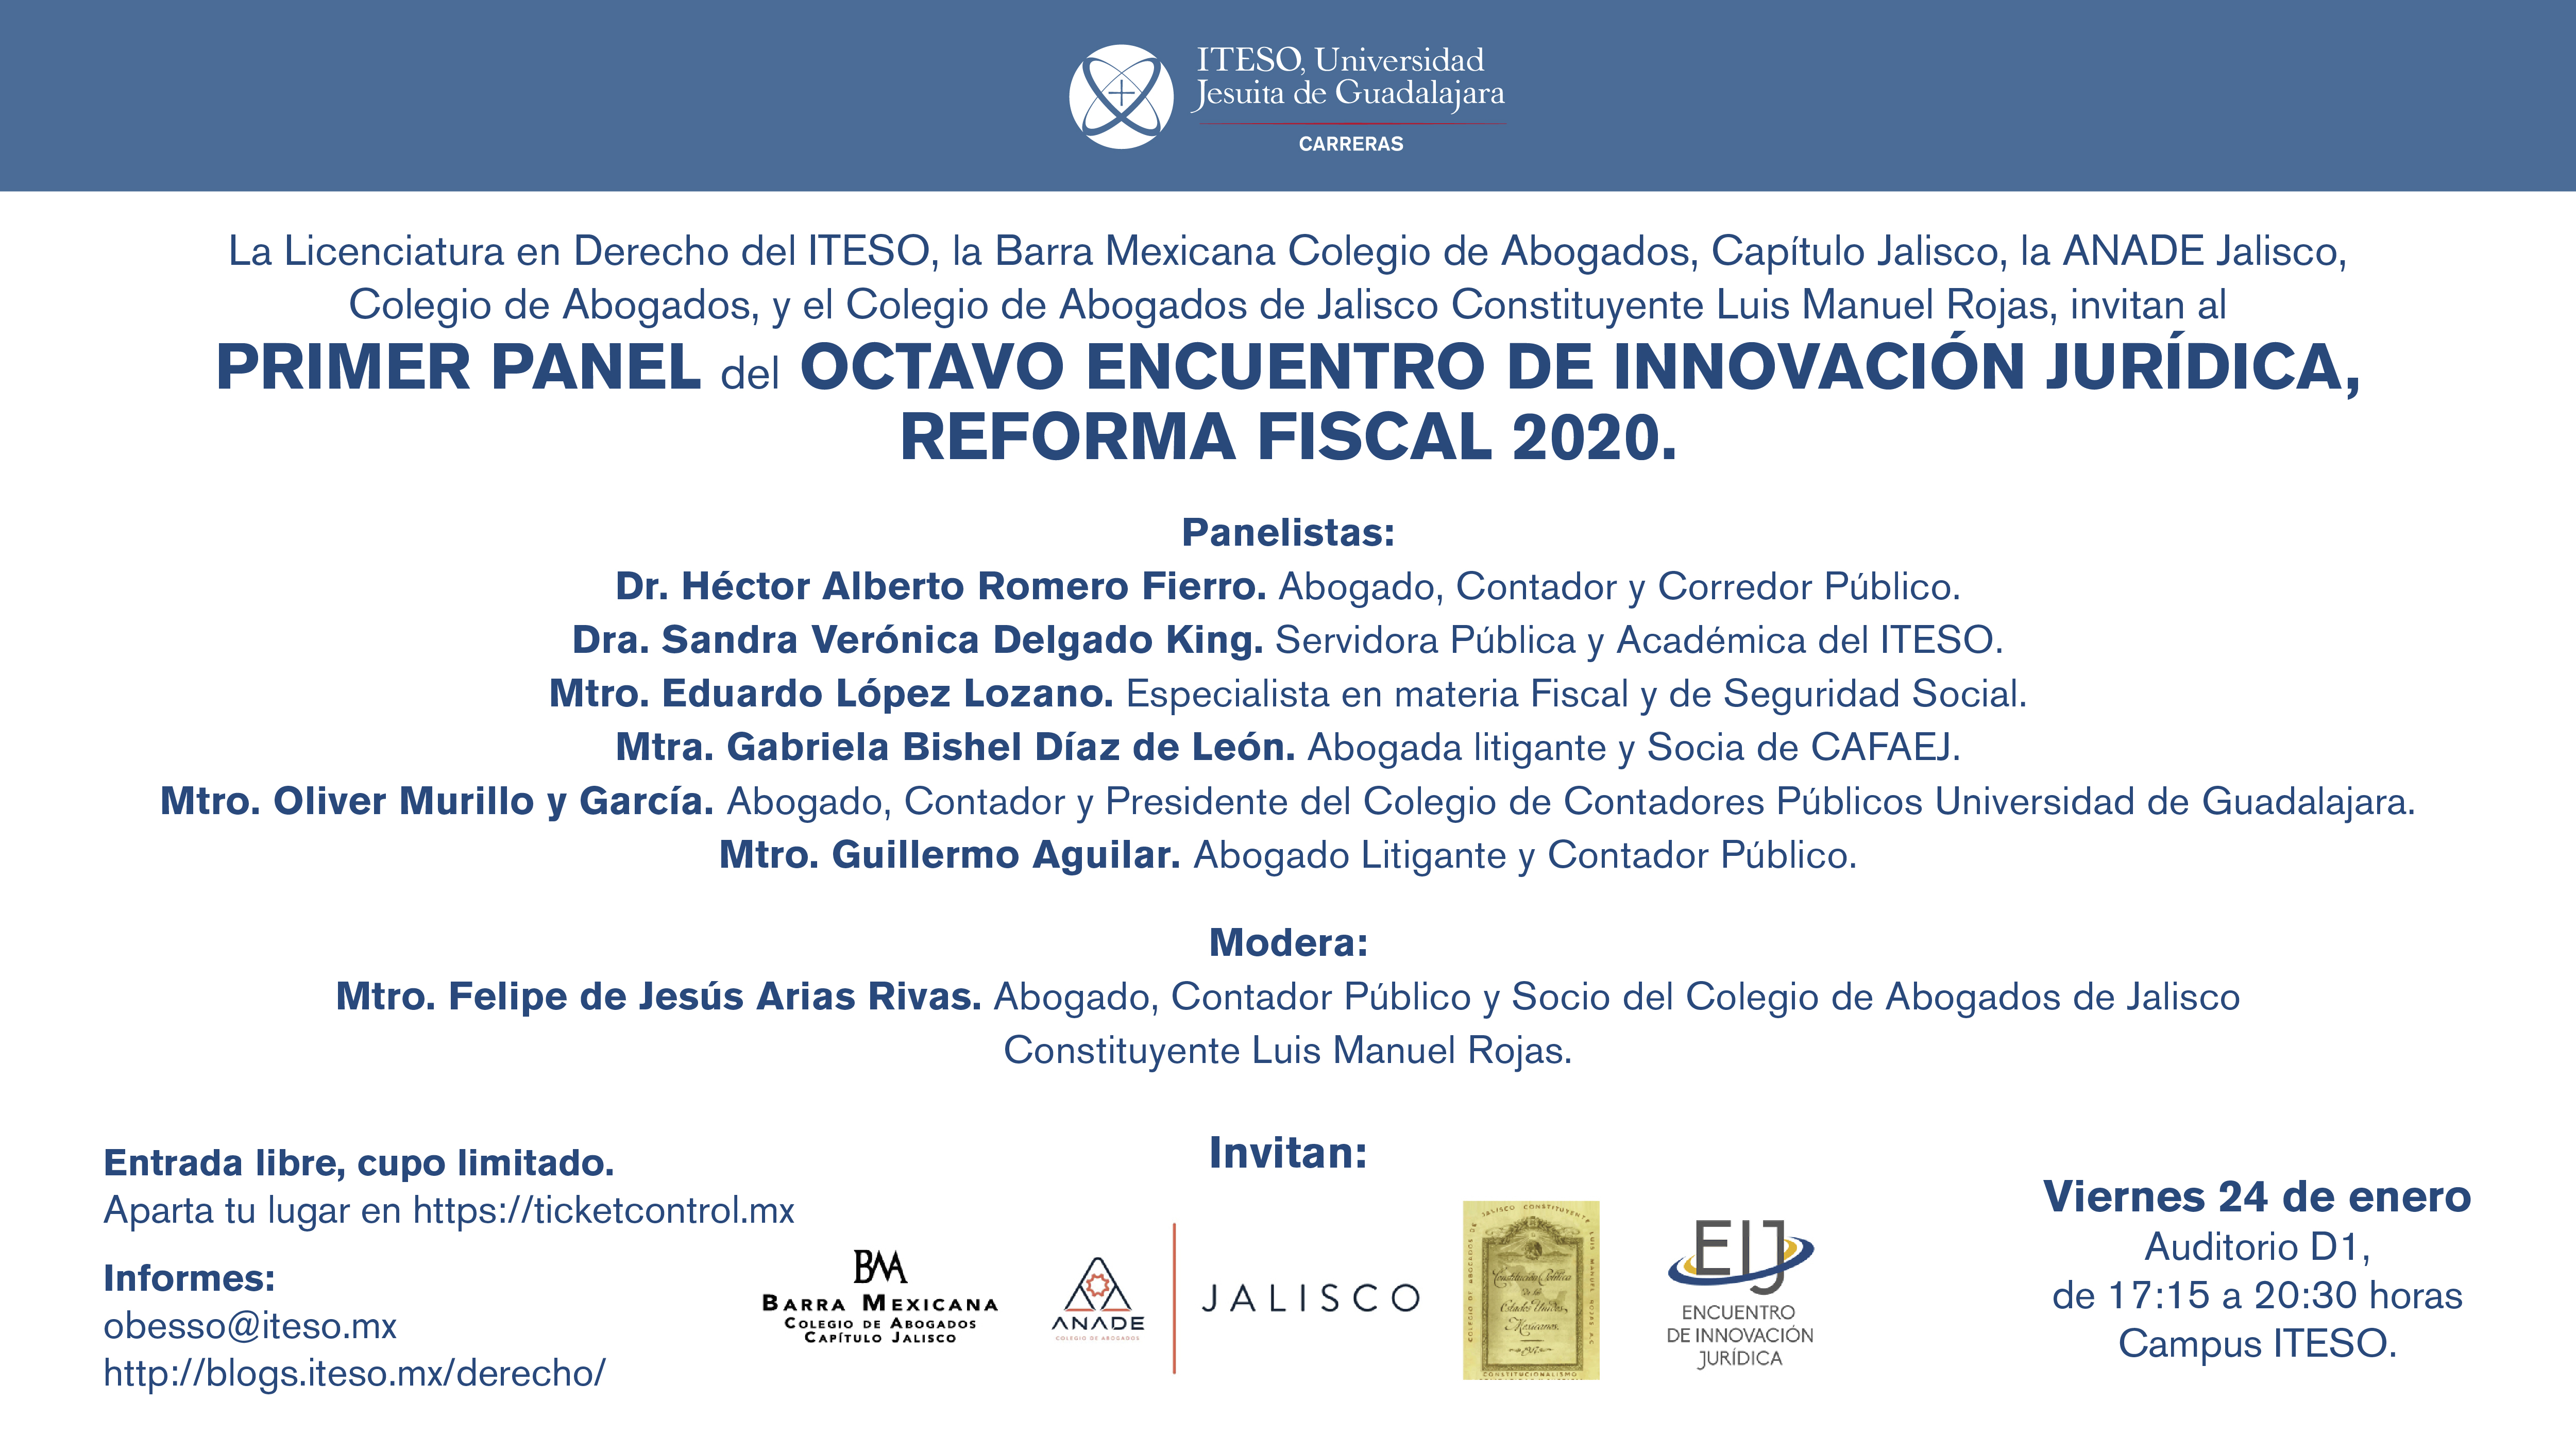 REFORMA FISCAL 2020